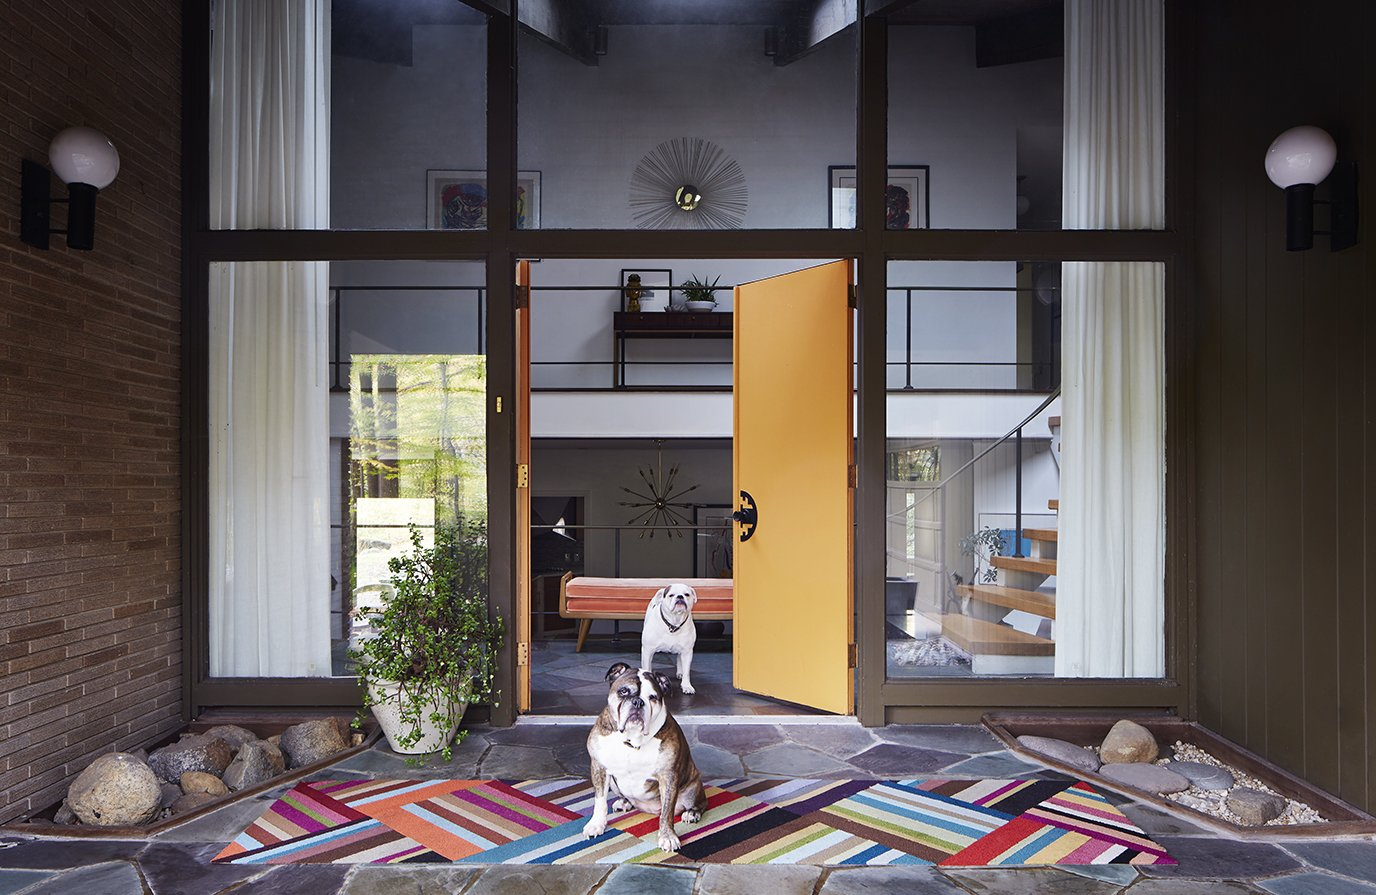 7 Colors To Use In Your Home To Create A Midcentury Modern Look With A